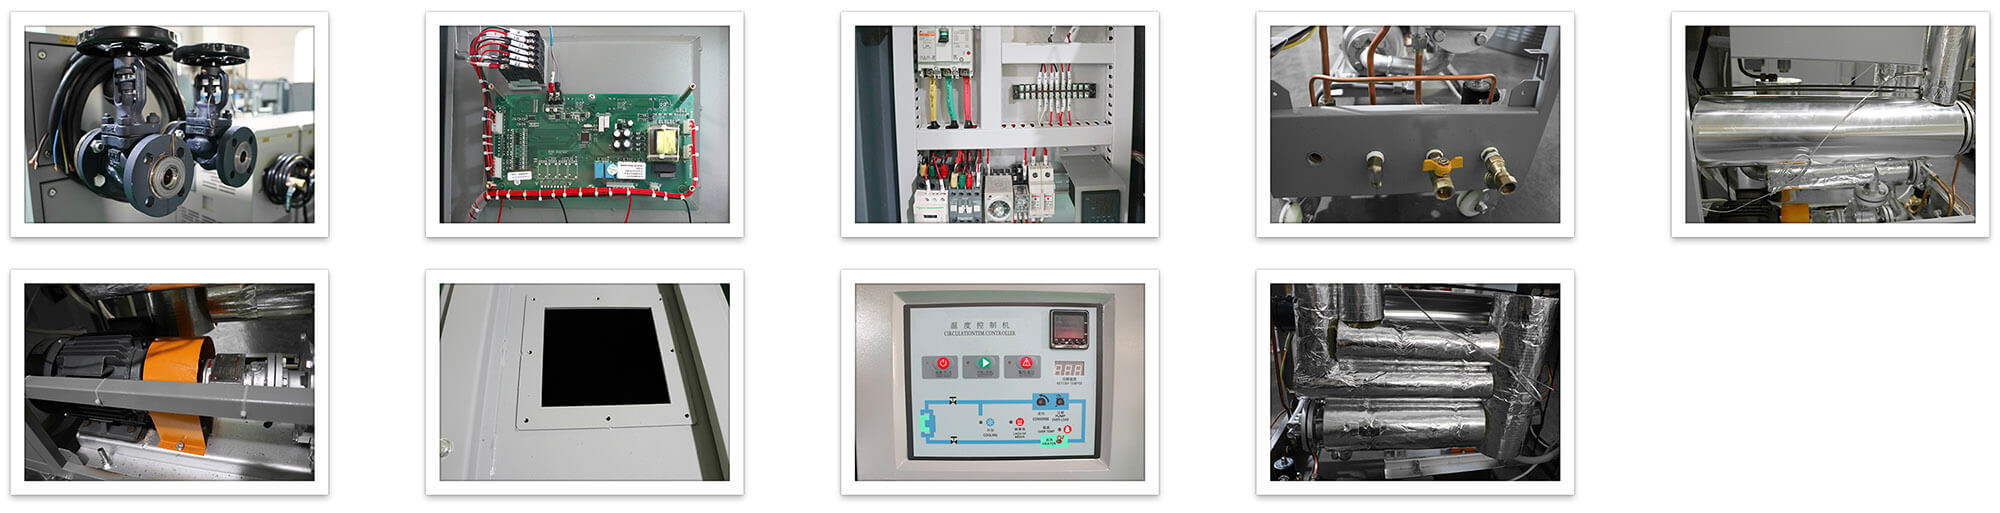 Mold Temperature Controller main parts